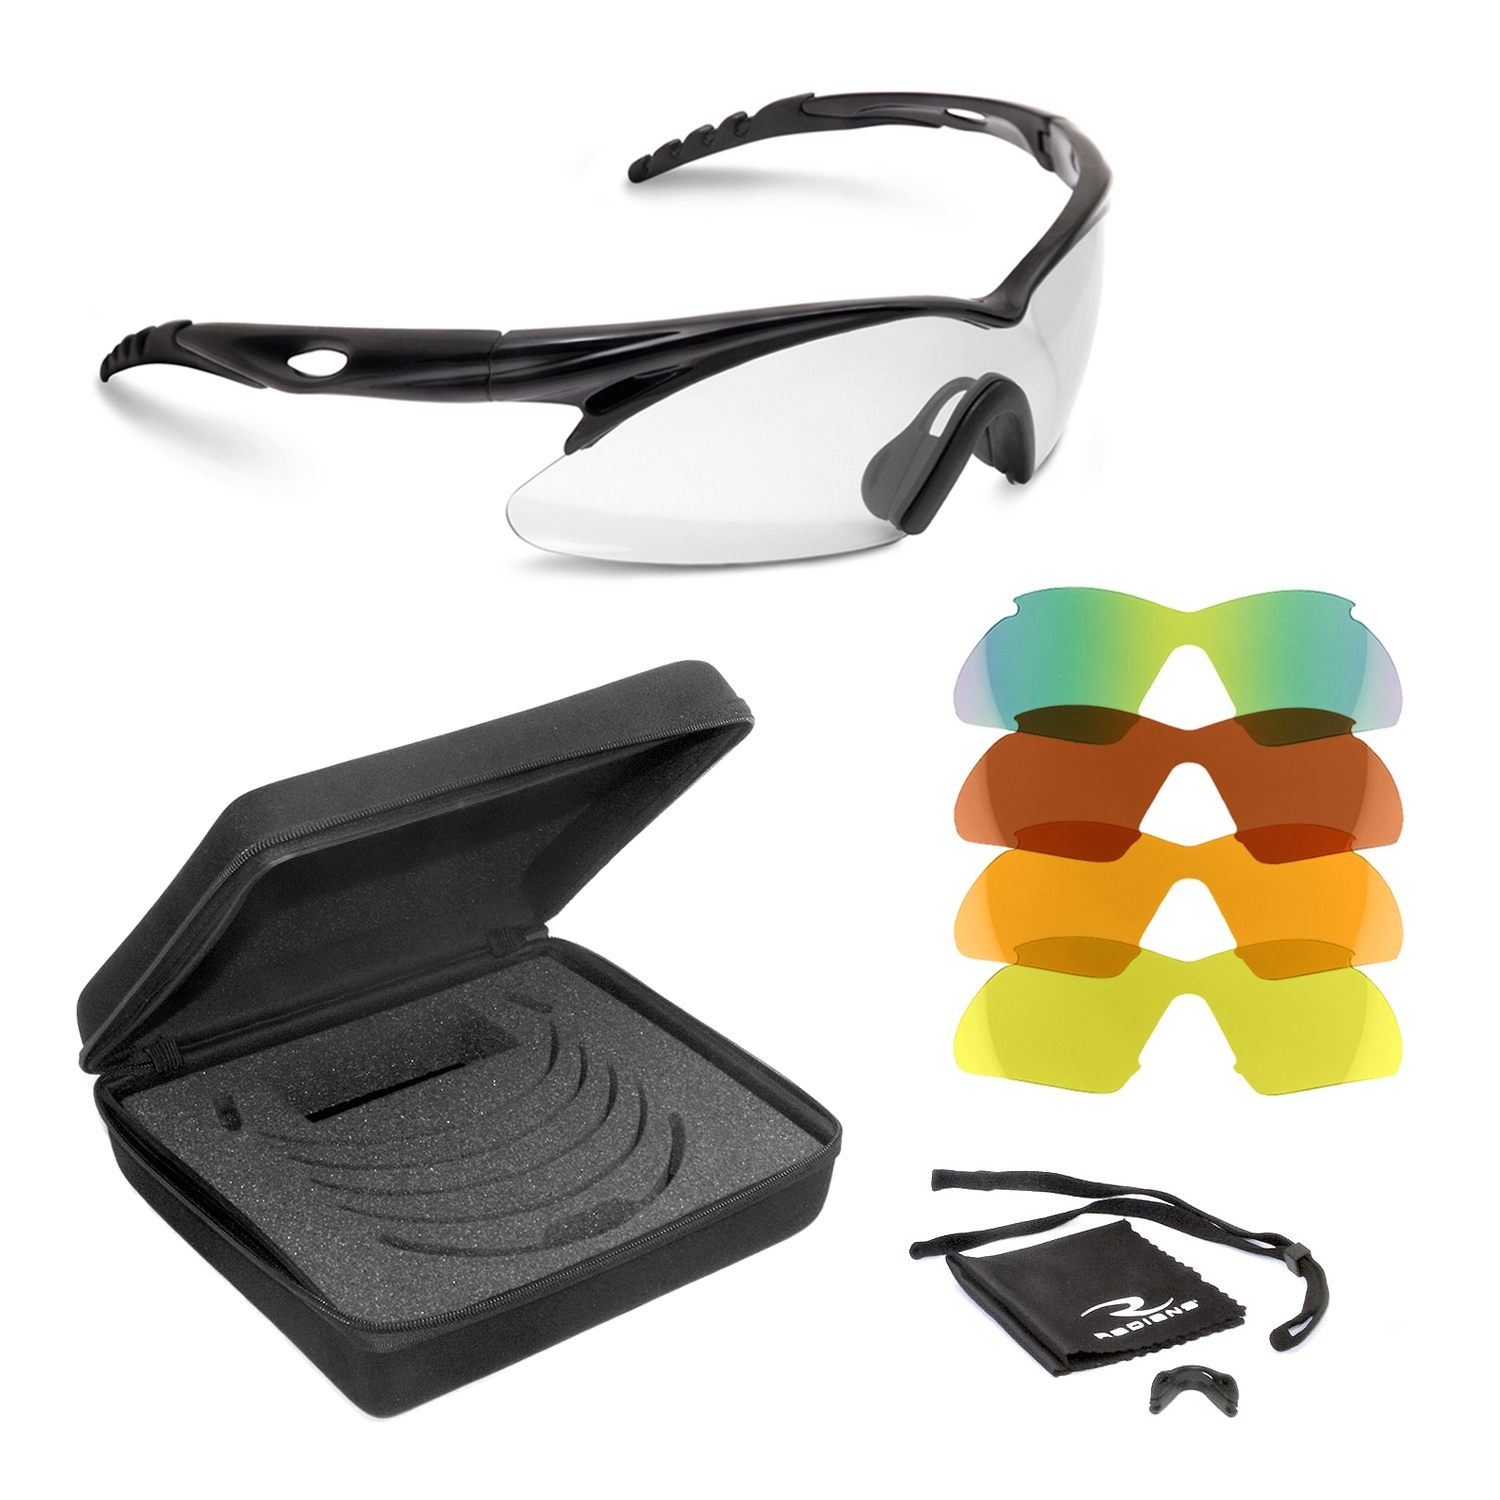 Radians SHIFT™ Shooting Glass Kit Trap Shooting glasses, shooting glasses, Shift glasses, Radians Shift, Radians, Shift, interchangeable lens kit for shooting glasses